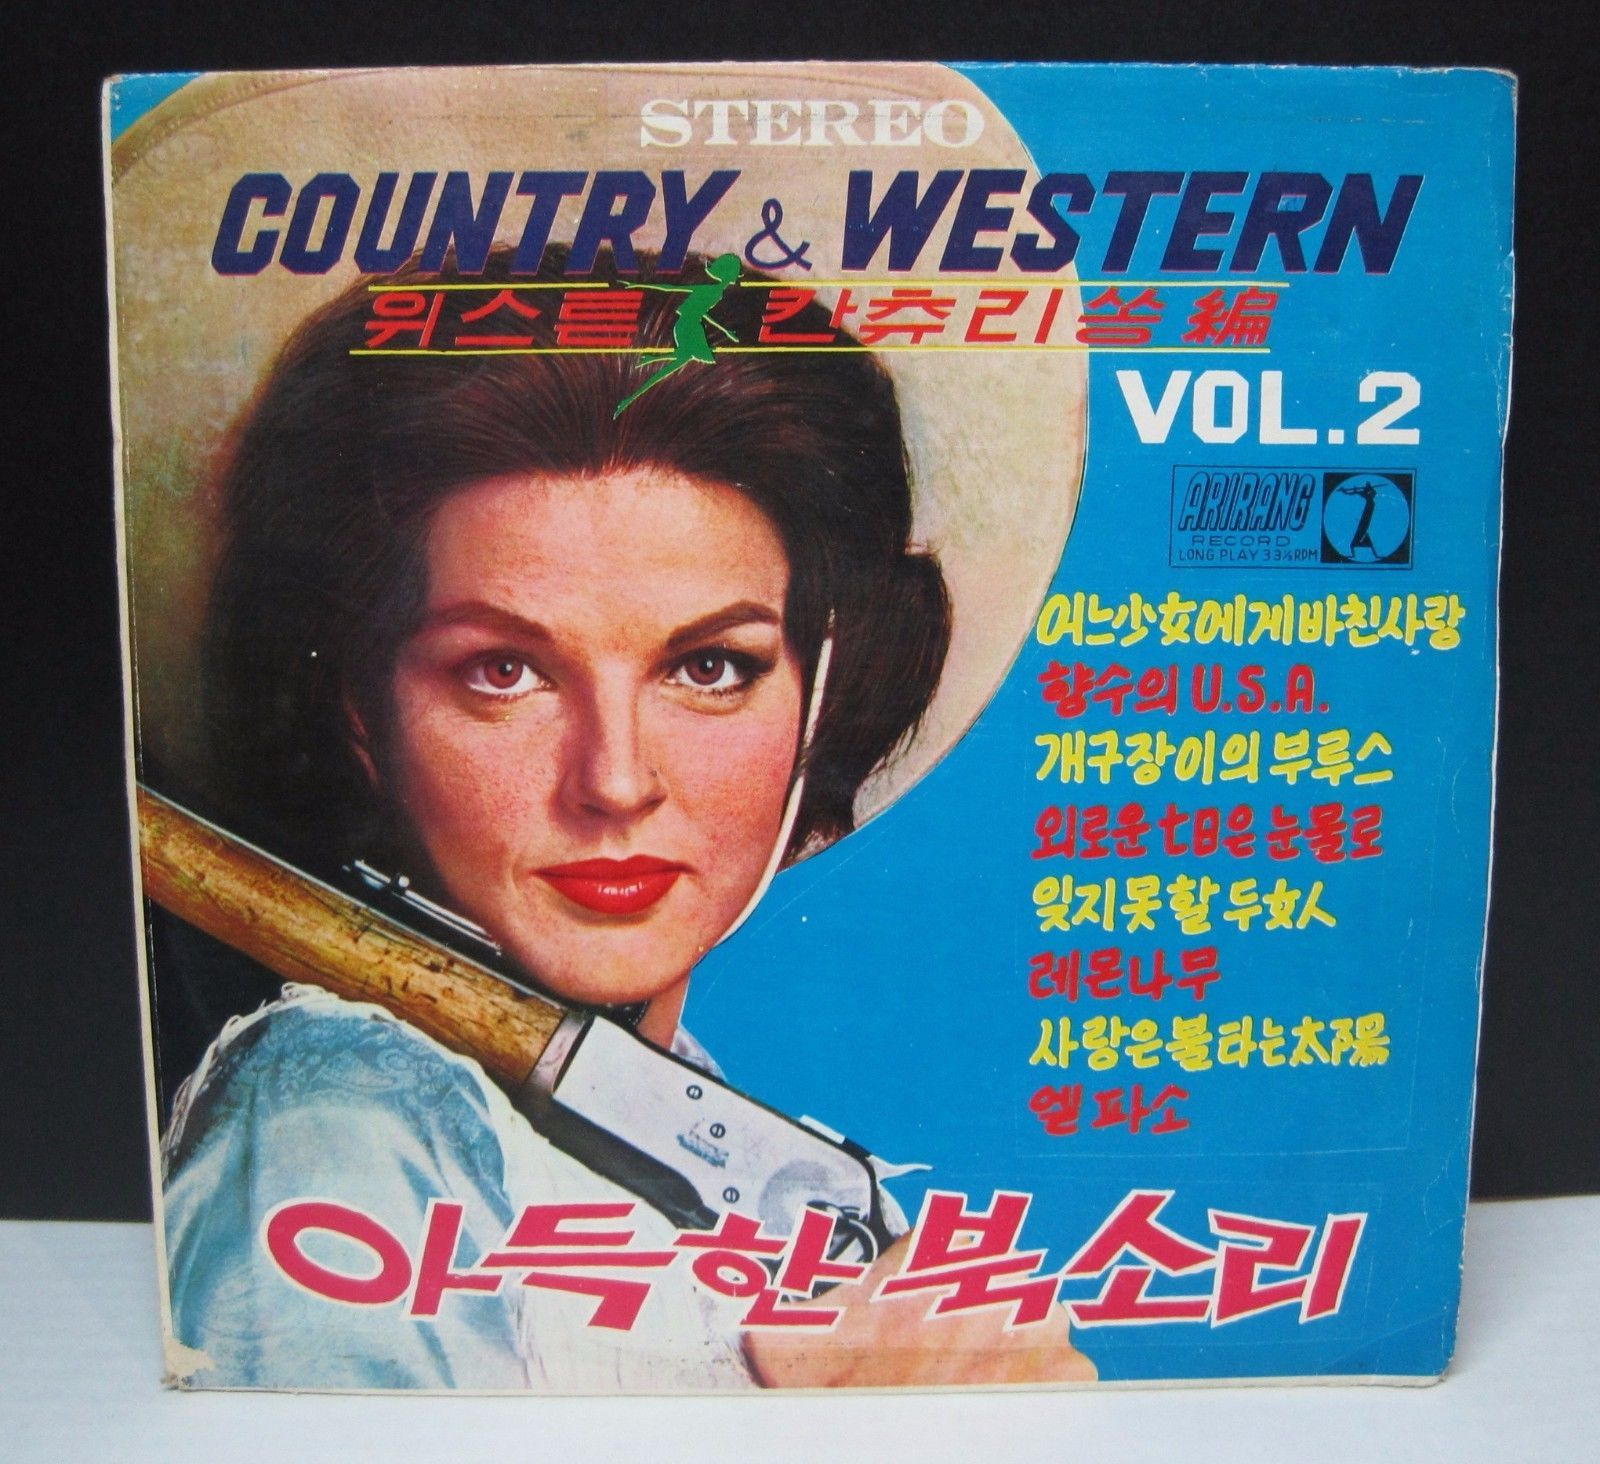 Primary image for Older Country & Western Vol 2 Arirang Korean Album Cowgirl Cover Retro Cool